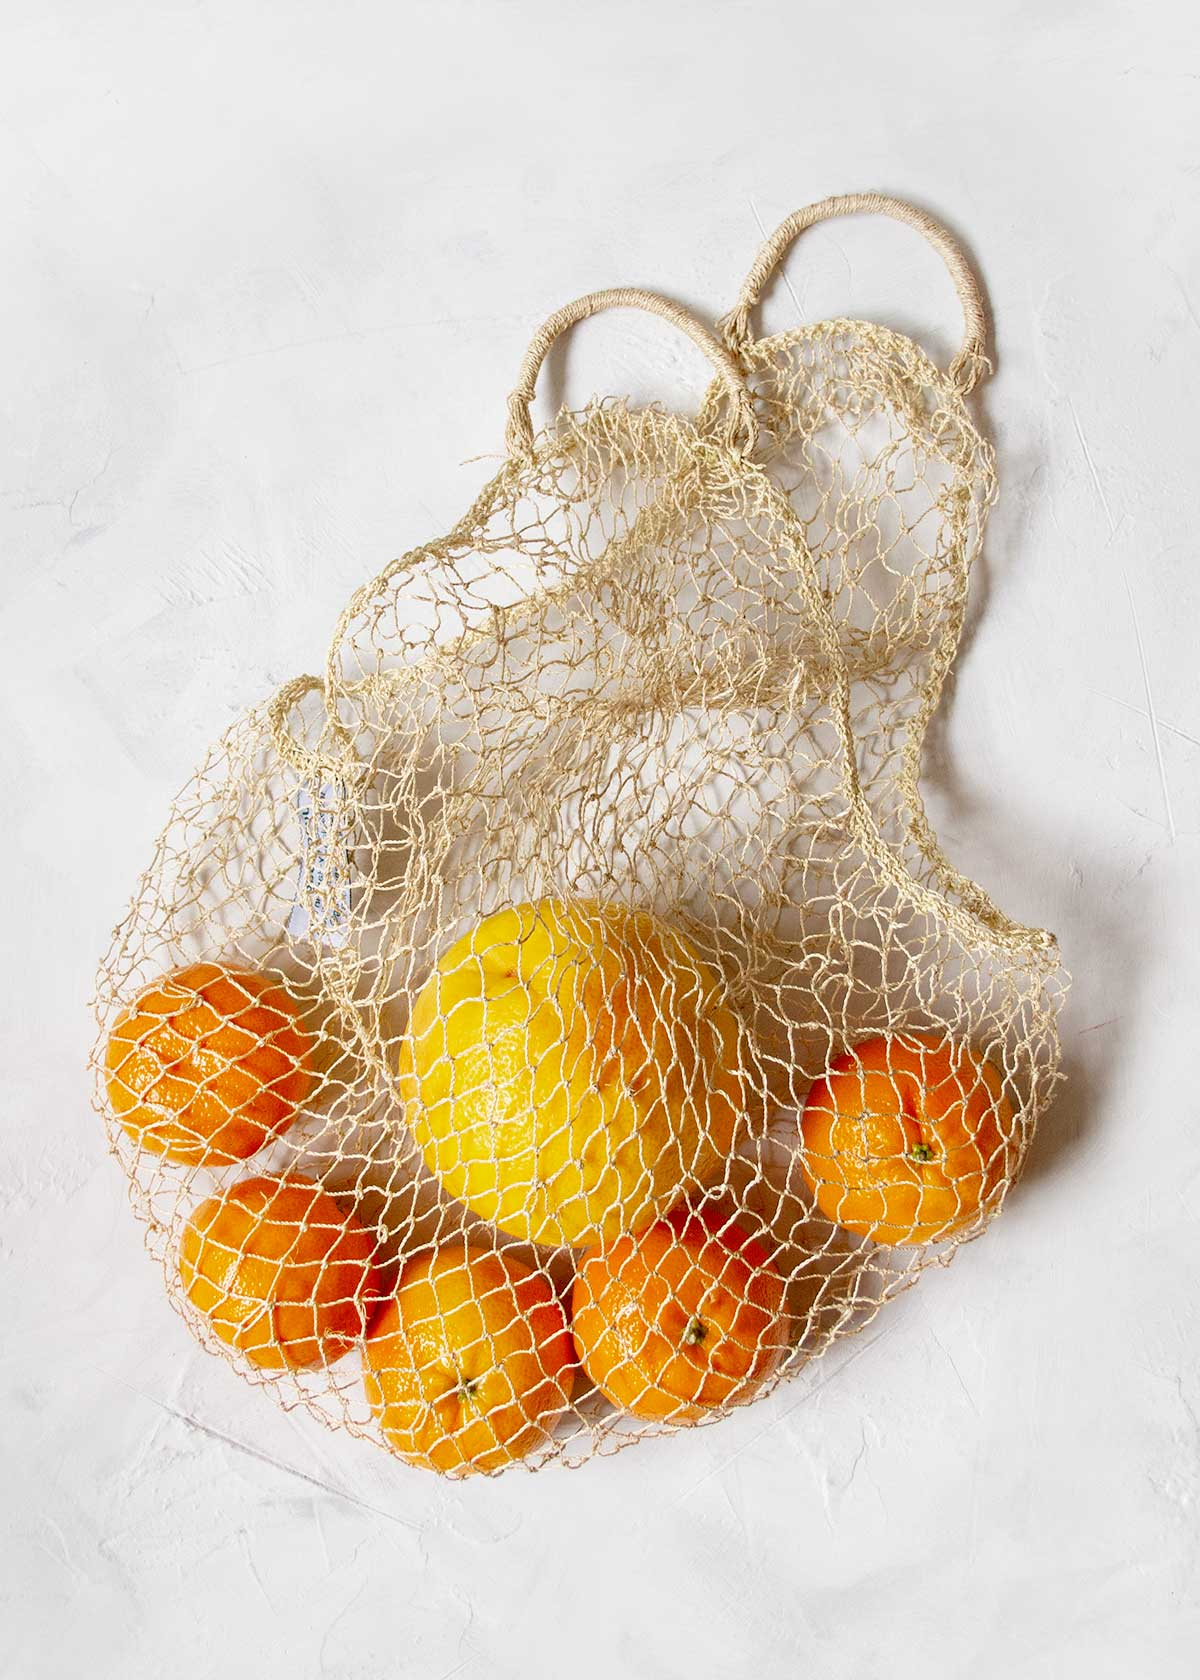 JungleVine® Eco-Friendly Market Mesh Bag